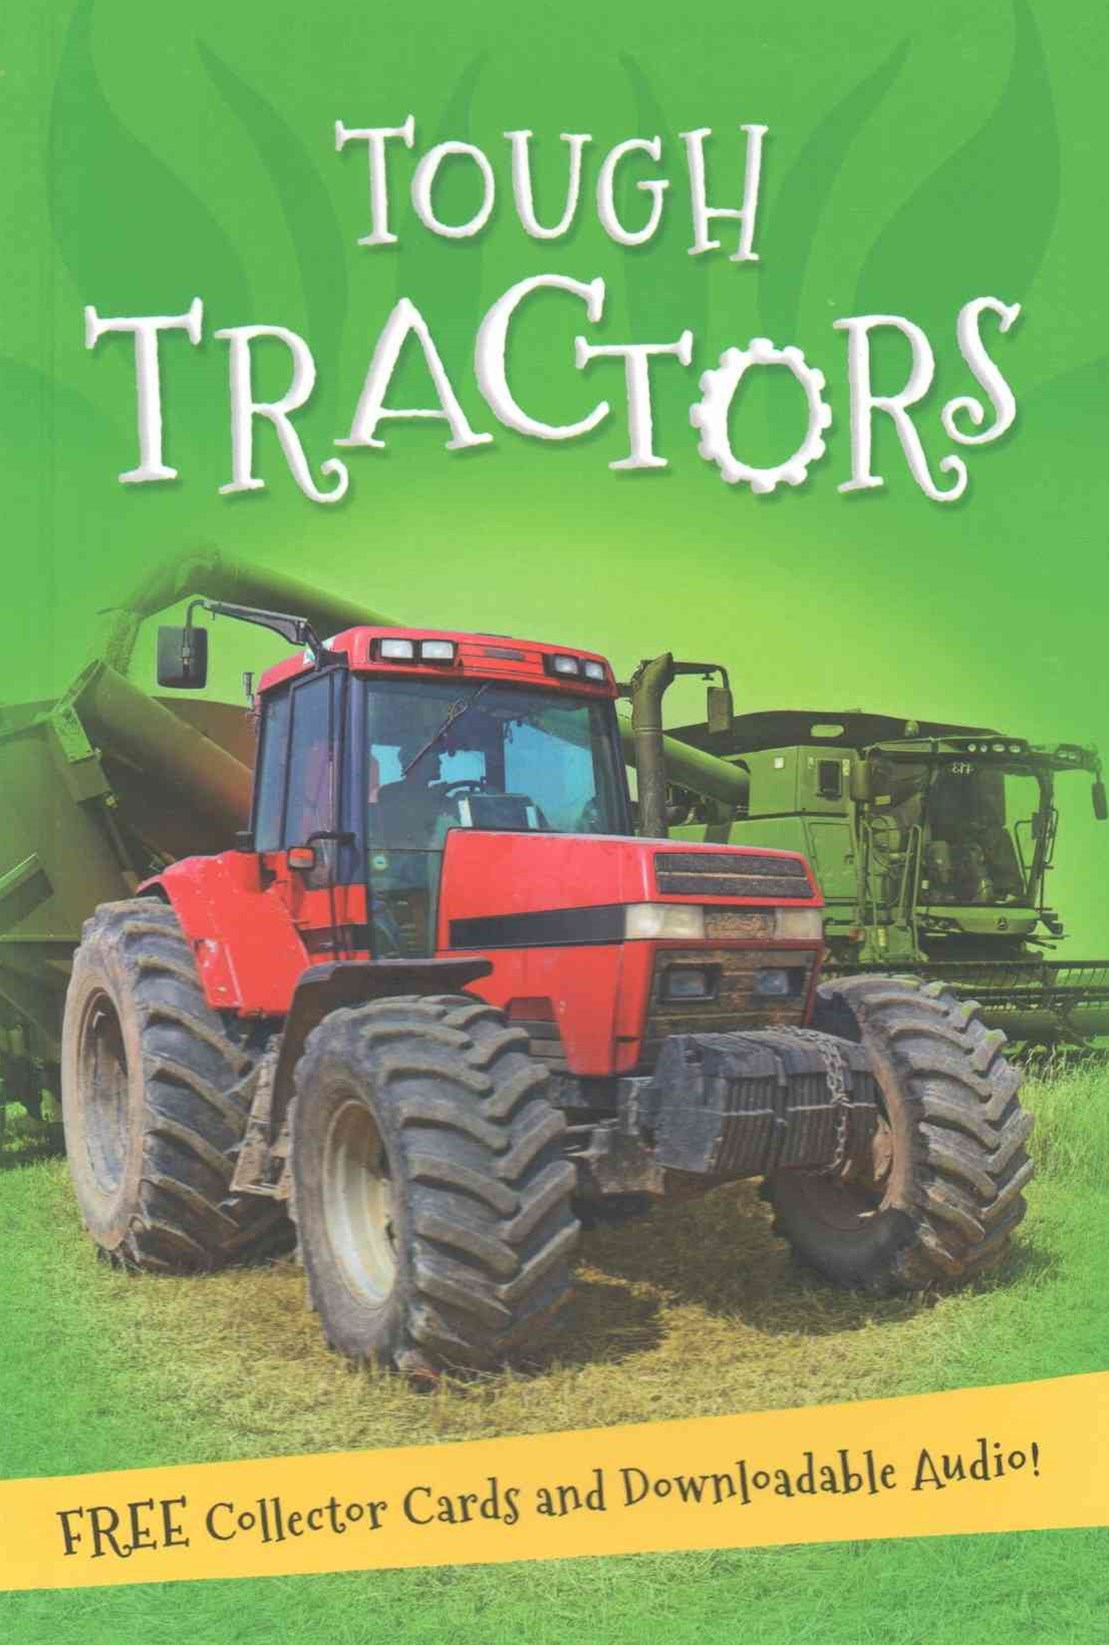 It's All About: Tough Tractors